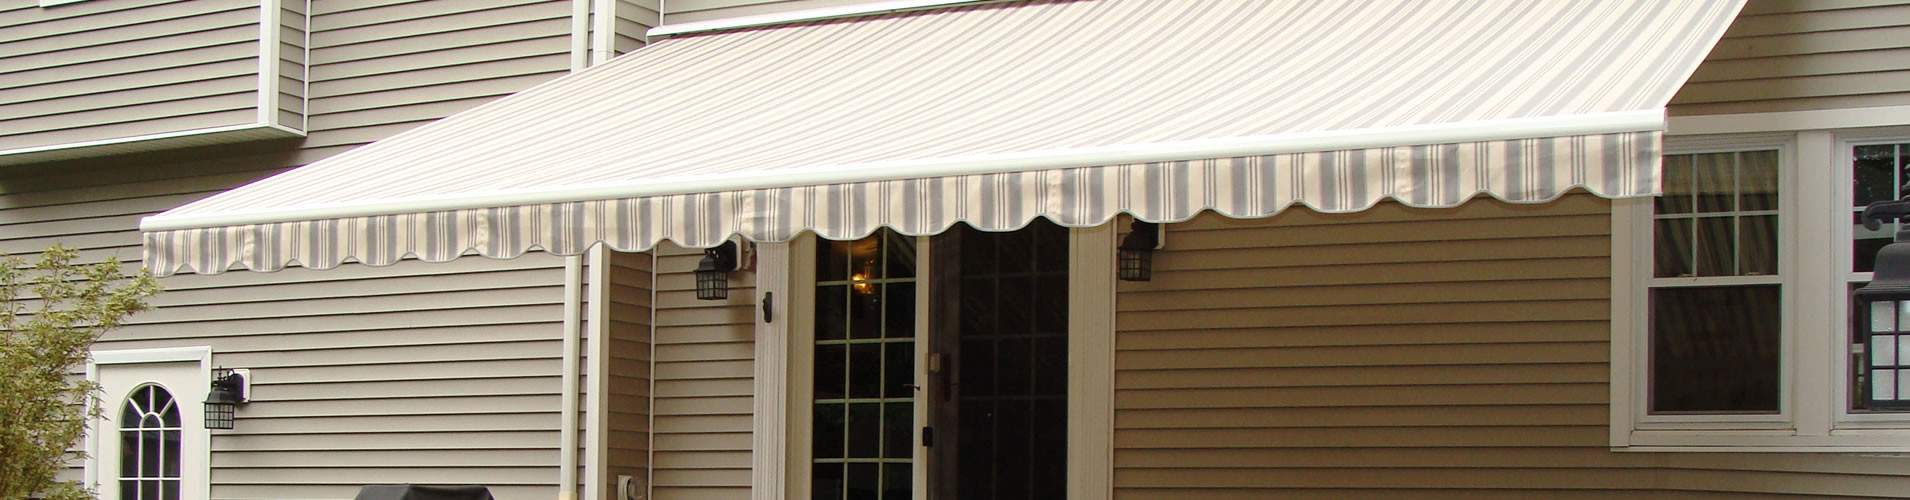 Awnings Austin TX Motorized Manual Retractable